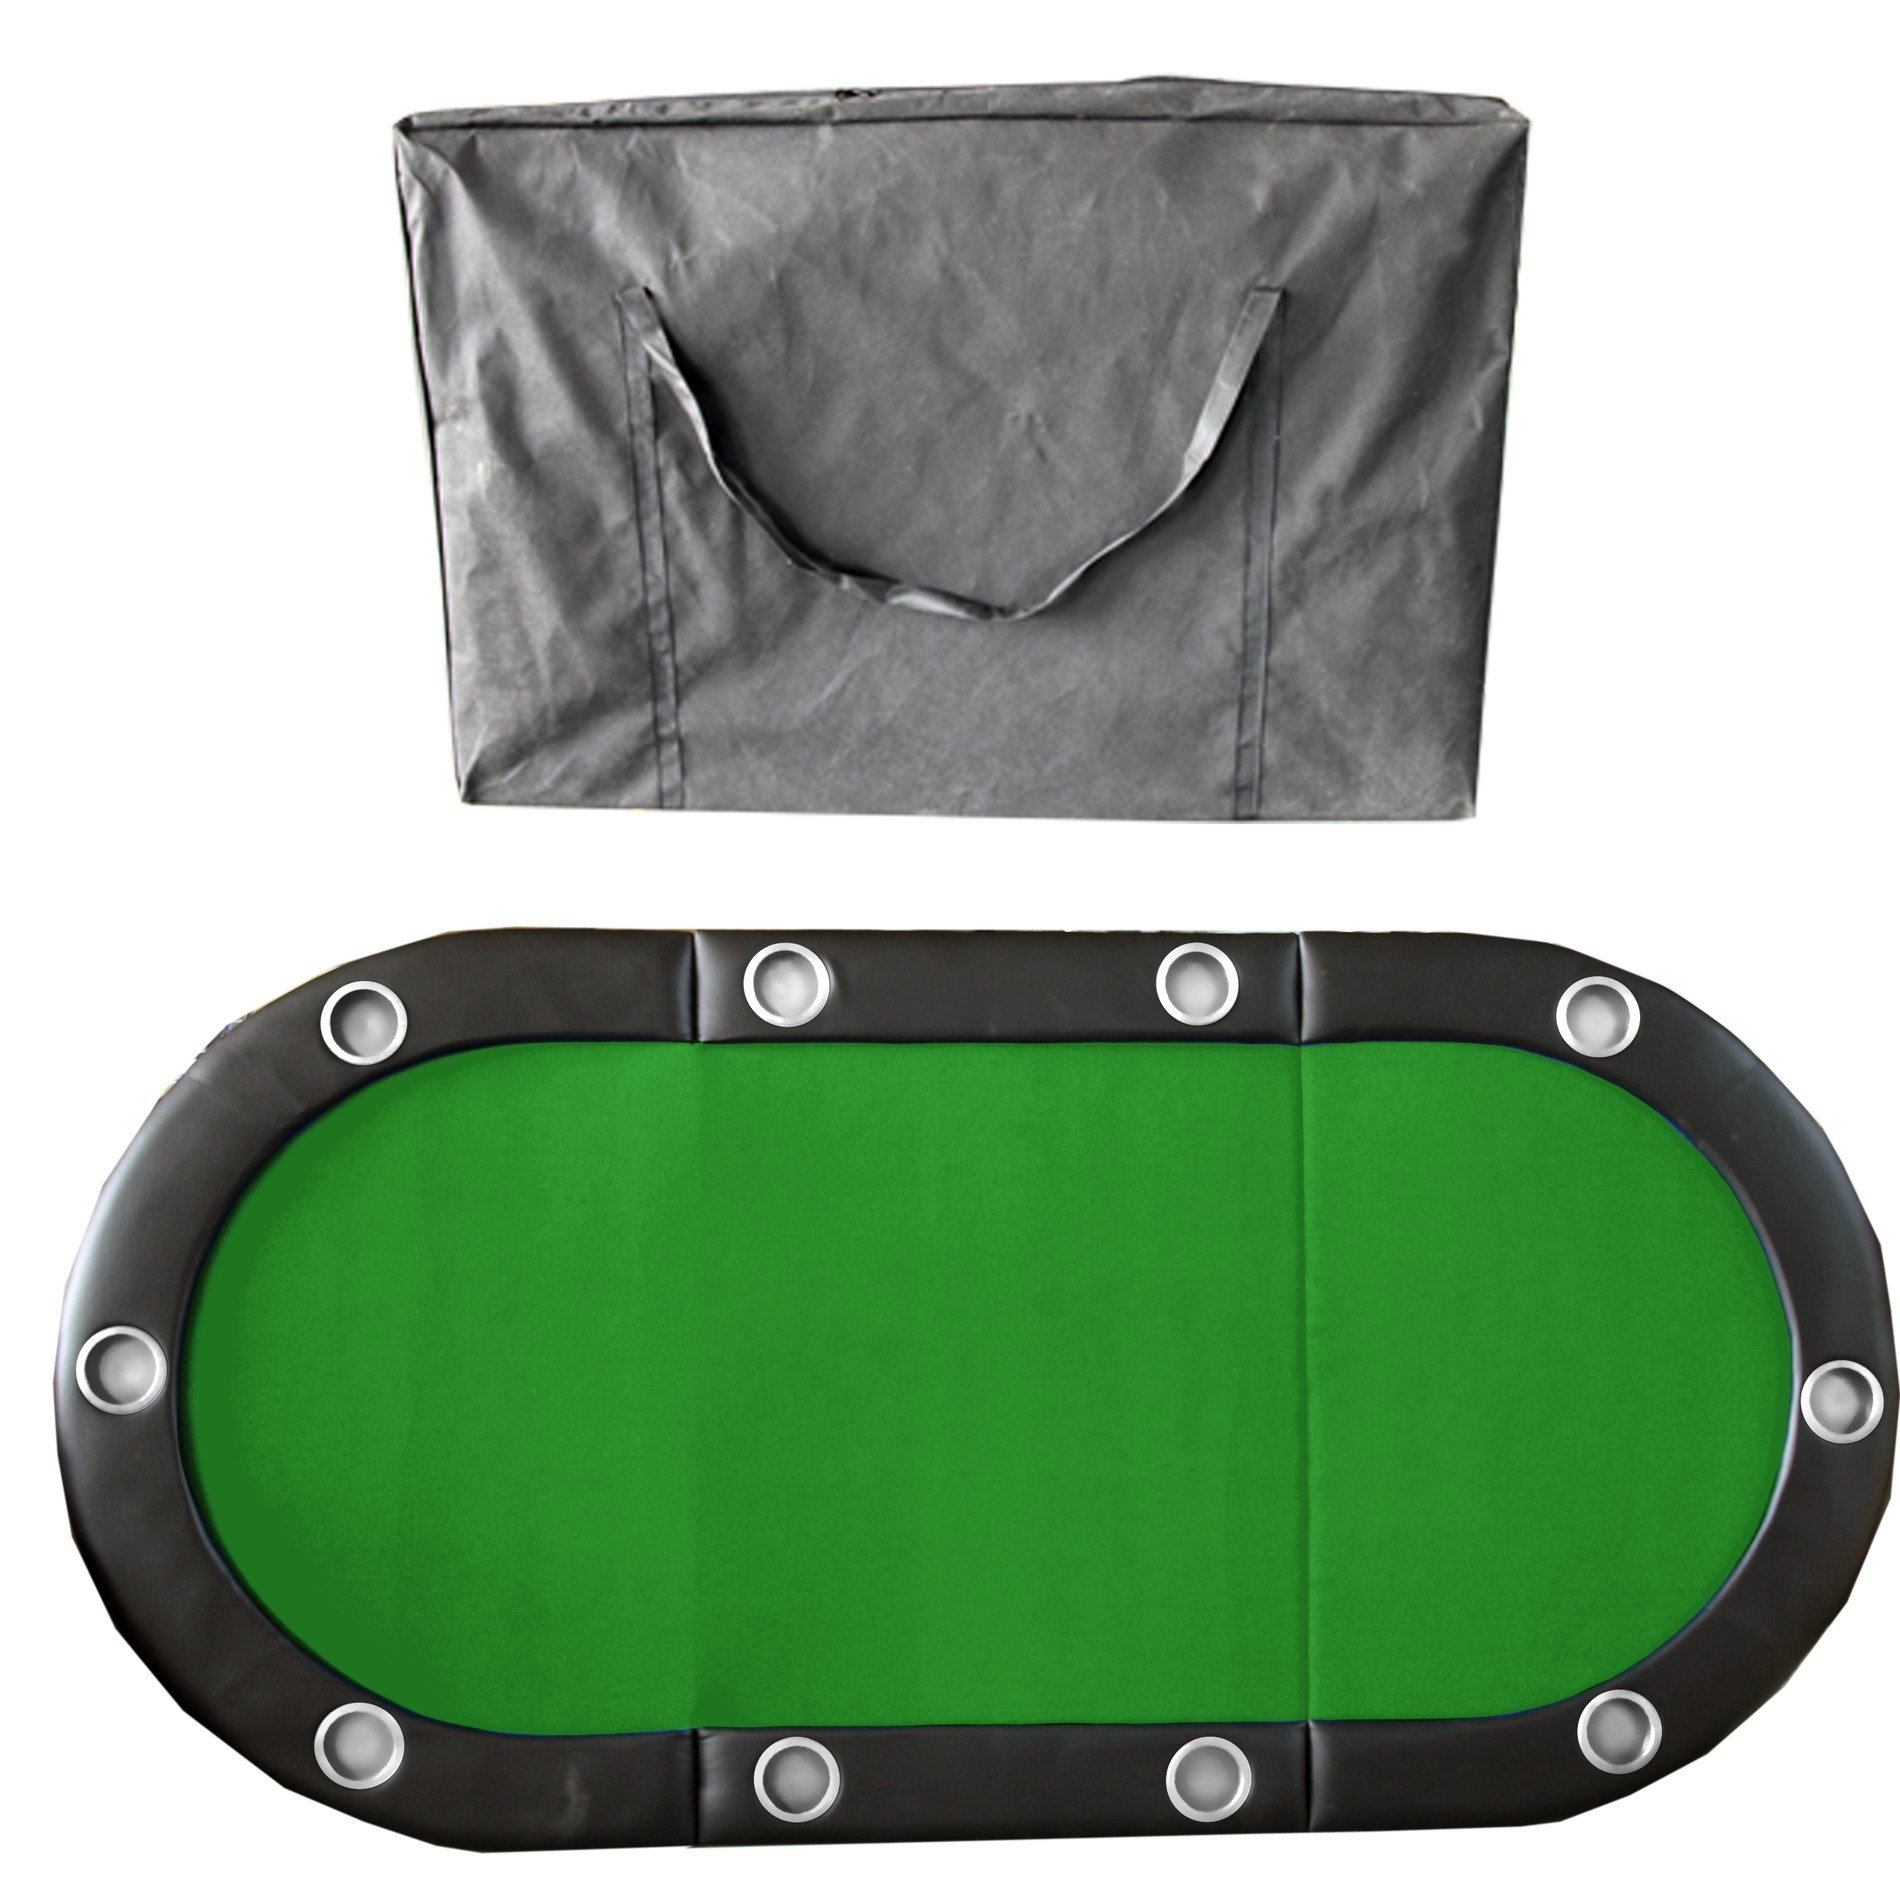 84'' 10 Player Texas Hold'em Folding Poker Table Top Green with Carrying Bag